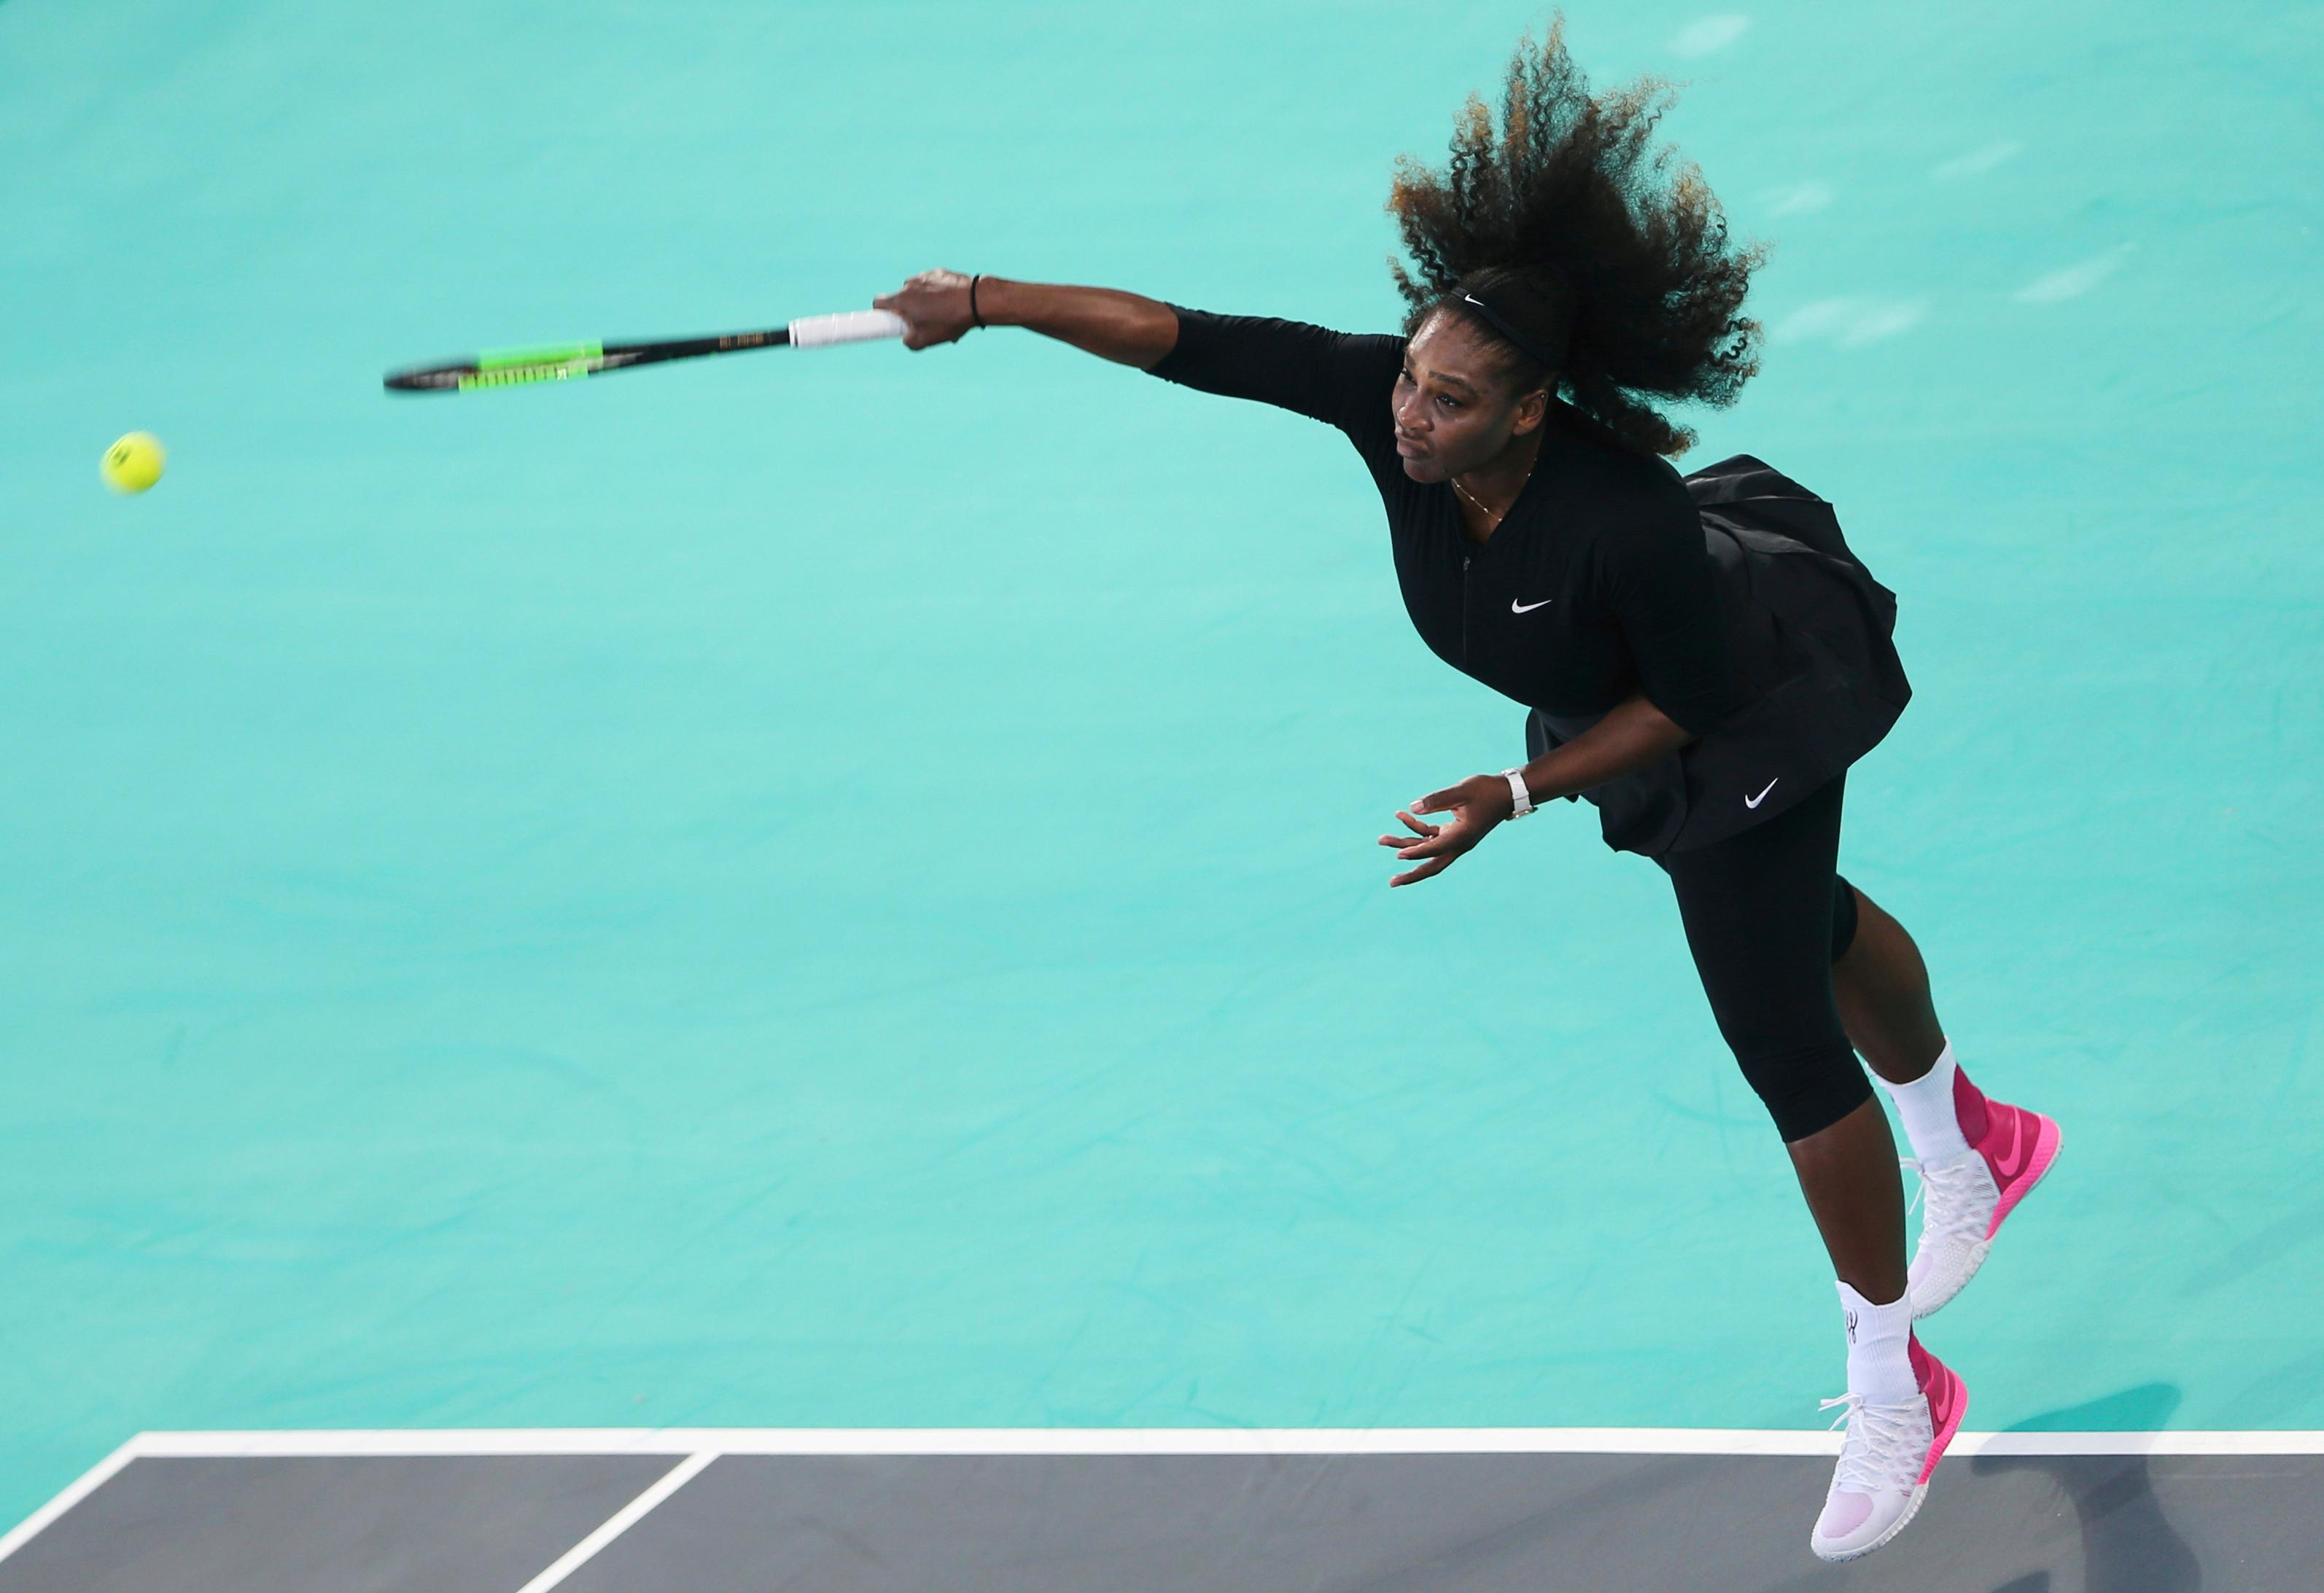 Serena Williams, of the U.S., serves the ball to Jelena Ostapenko, of Latvia, during the final day of the Mubadala World Tennis Championship in Abu Dhabi, United Arab Emirates, Saturday, Dec. 30, 2017. (AP Photo/Kamran Jebreili)